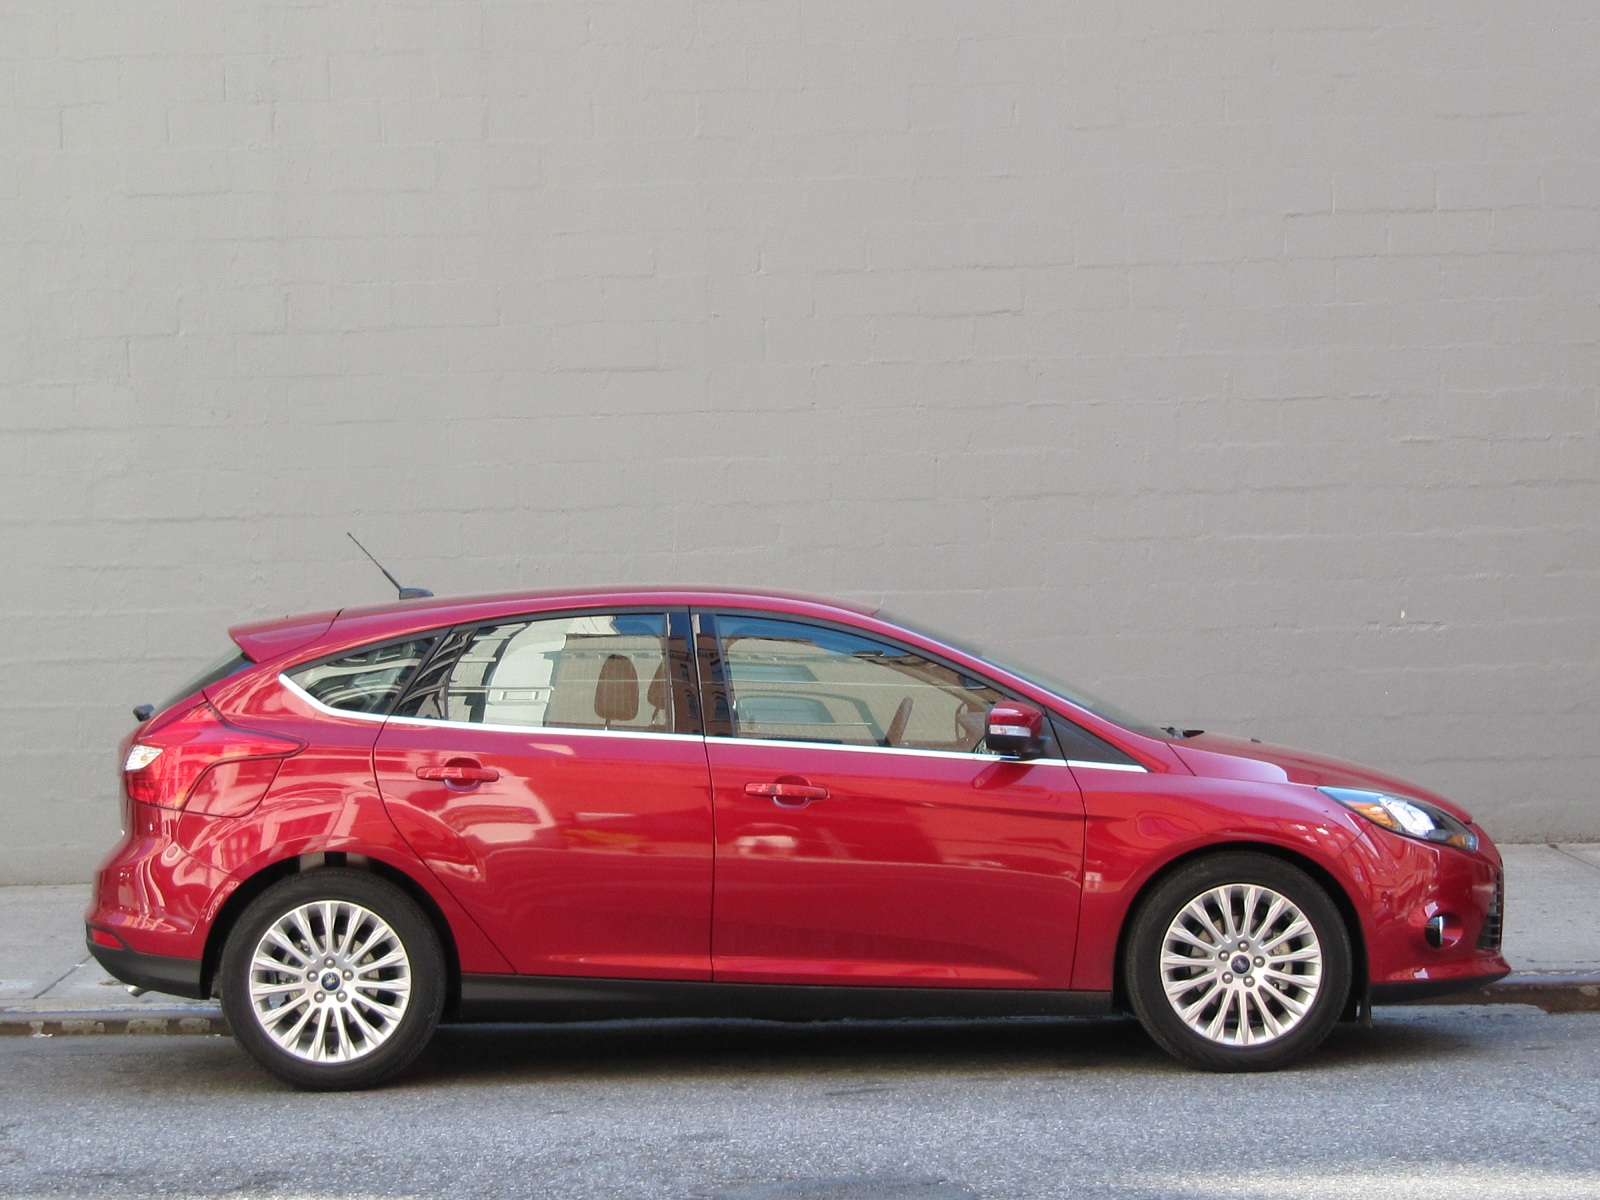 3 cylinder 2014 ford focus ecoboost to deliver 50 mpg plus. Black Bedroom Furniture Sets. Home Design Ideas